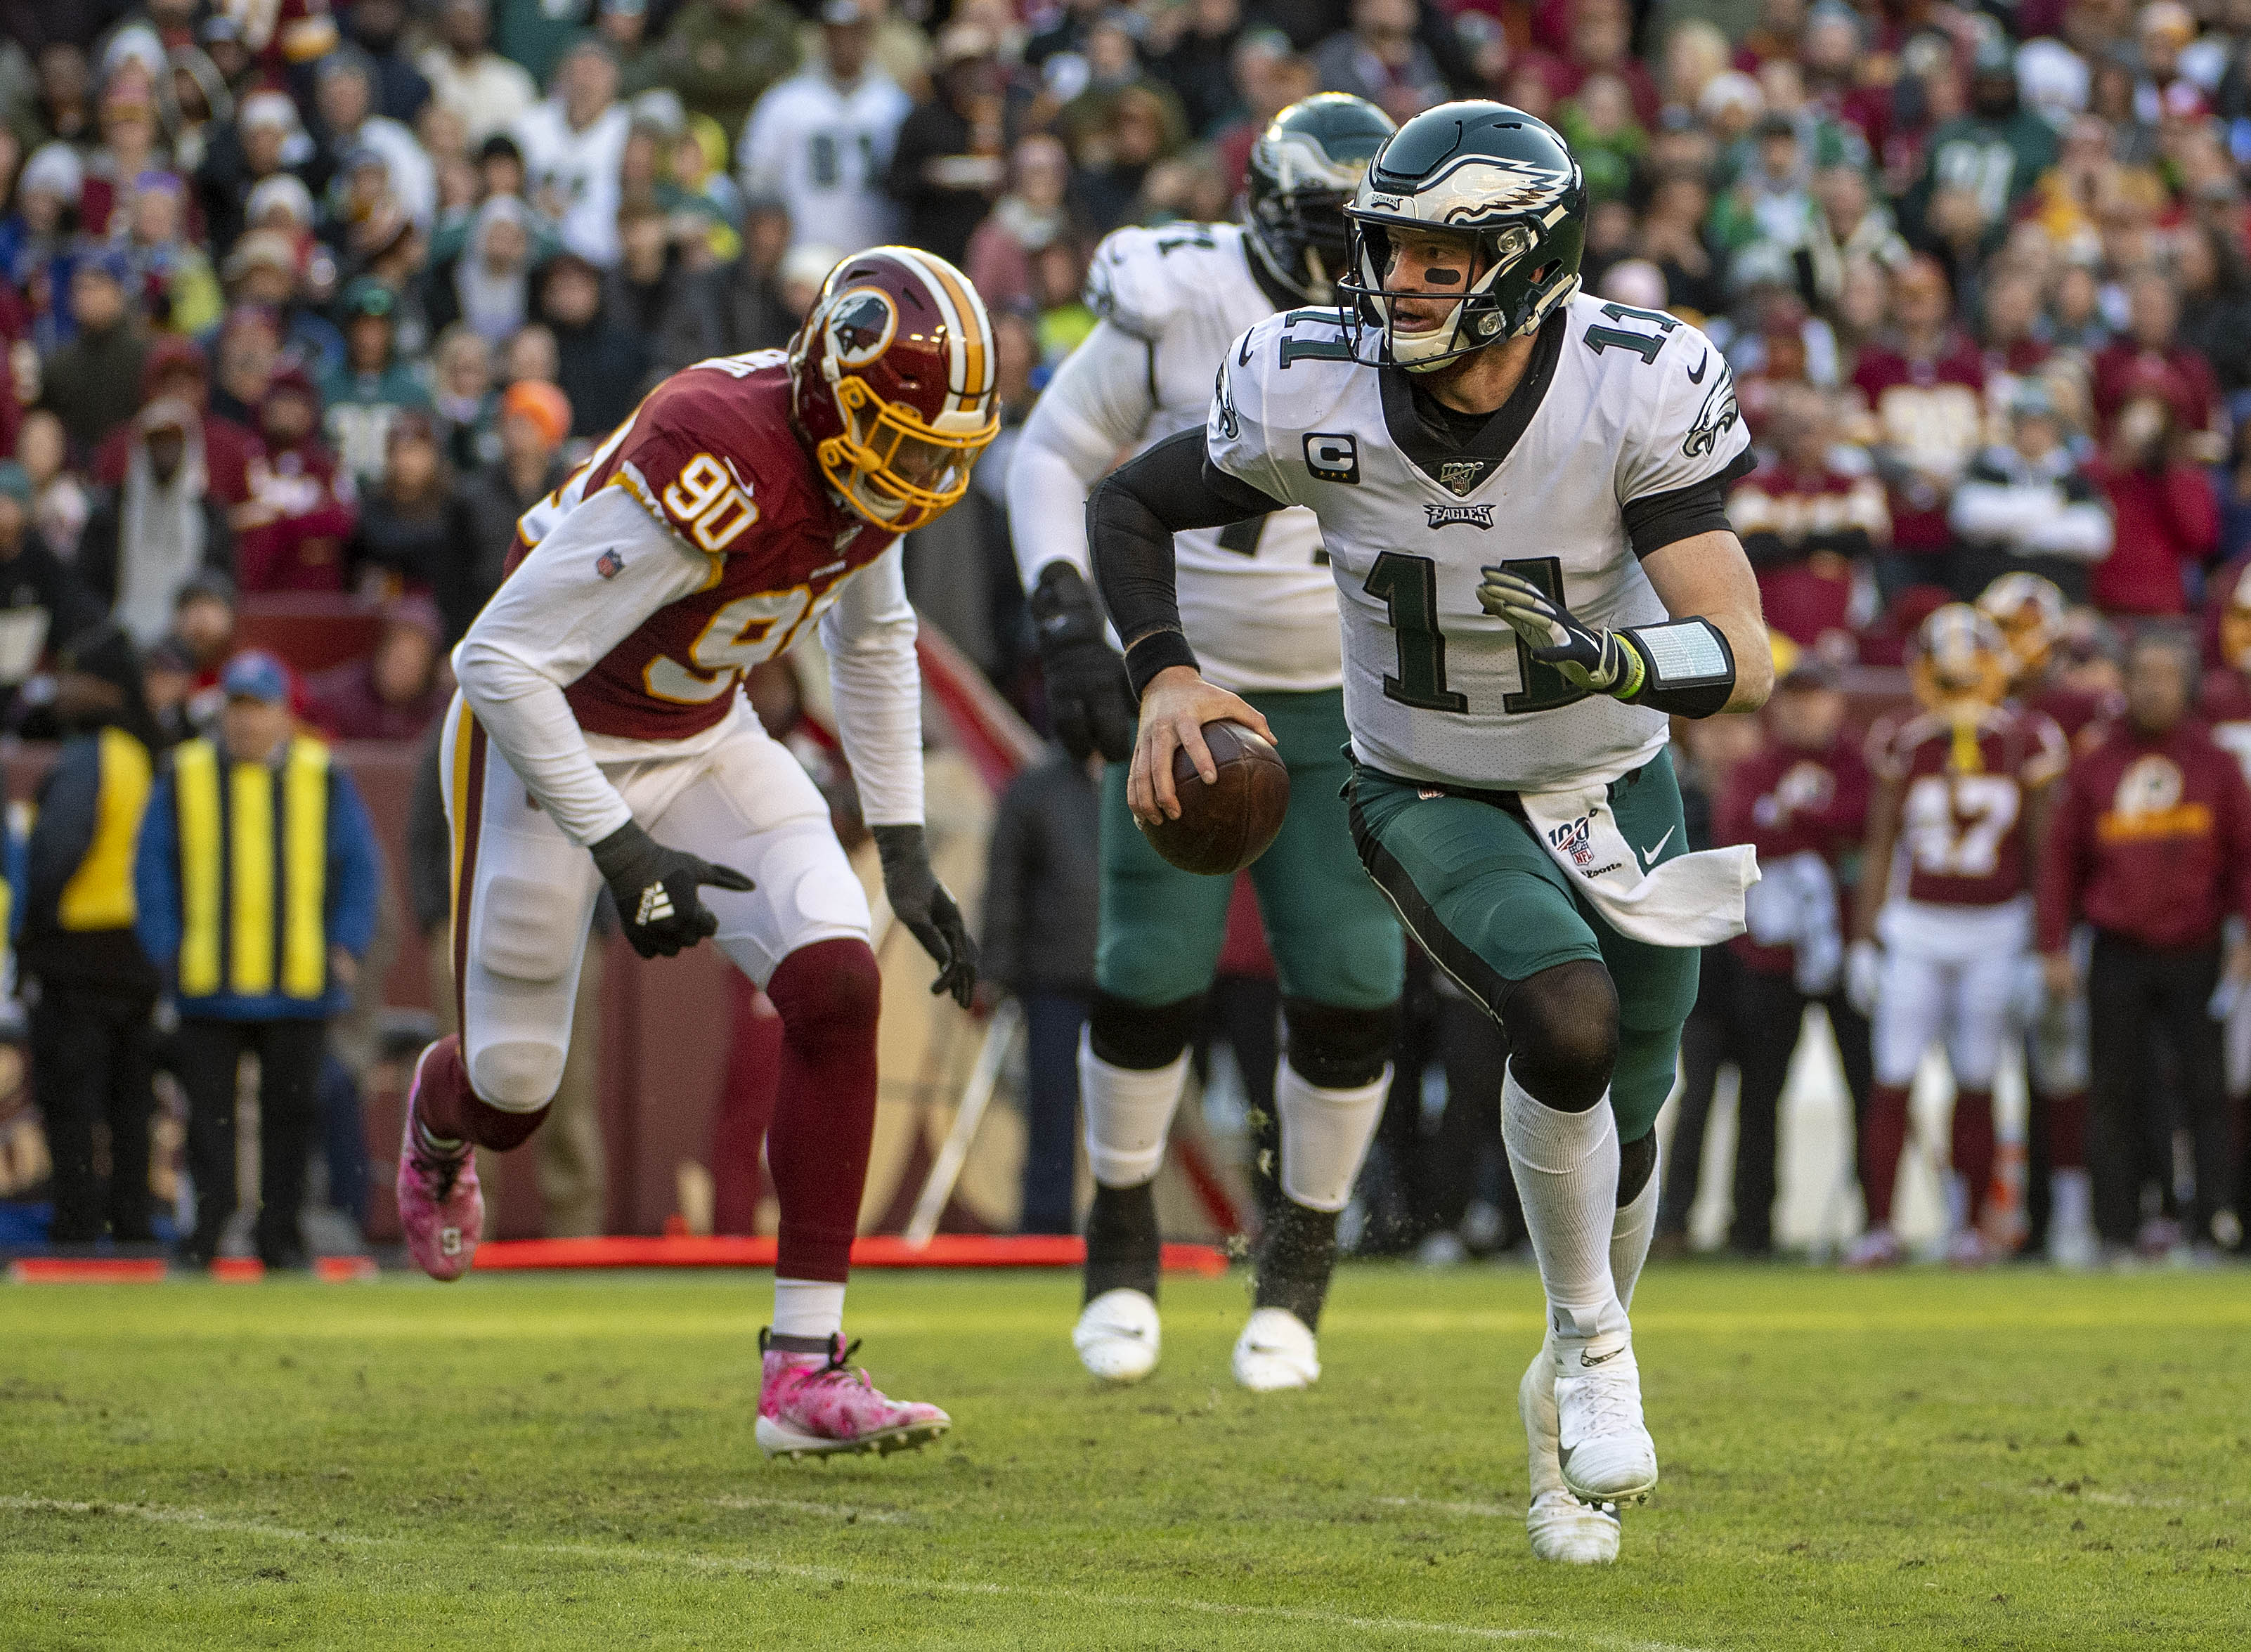 Spoiled Eagles fans boo-hoo over QB uncertainty